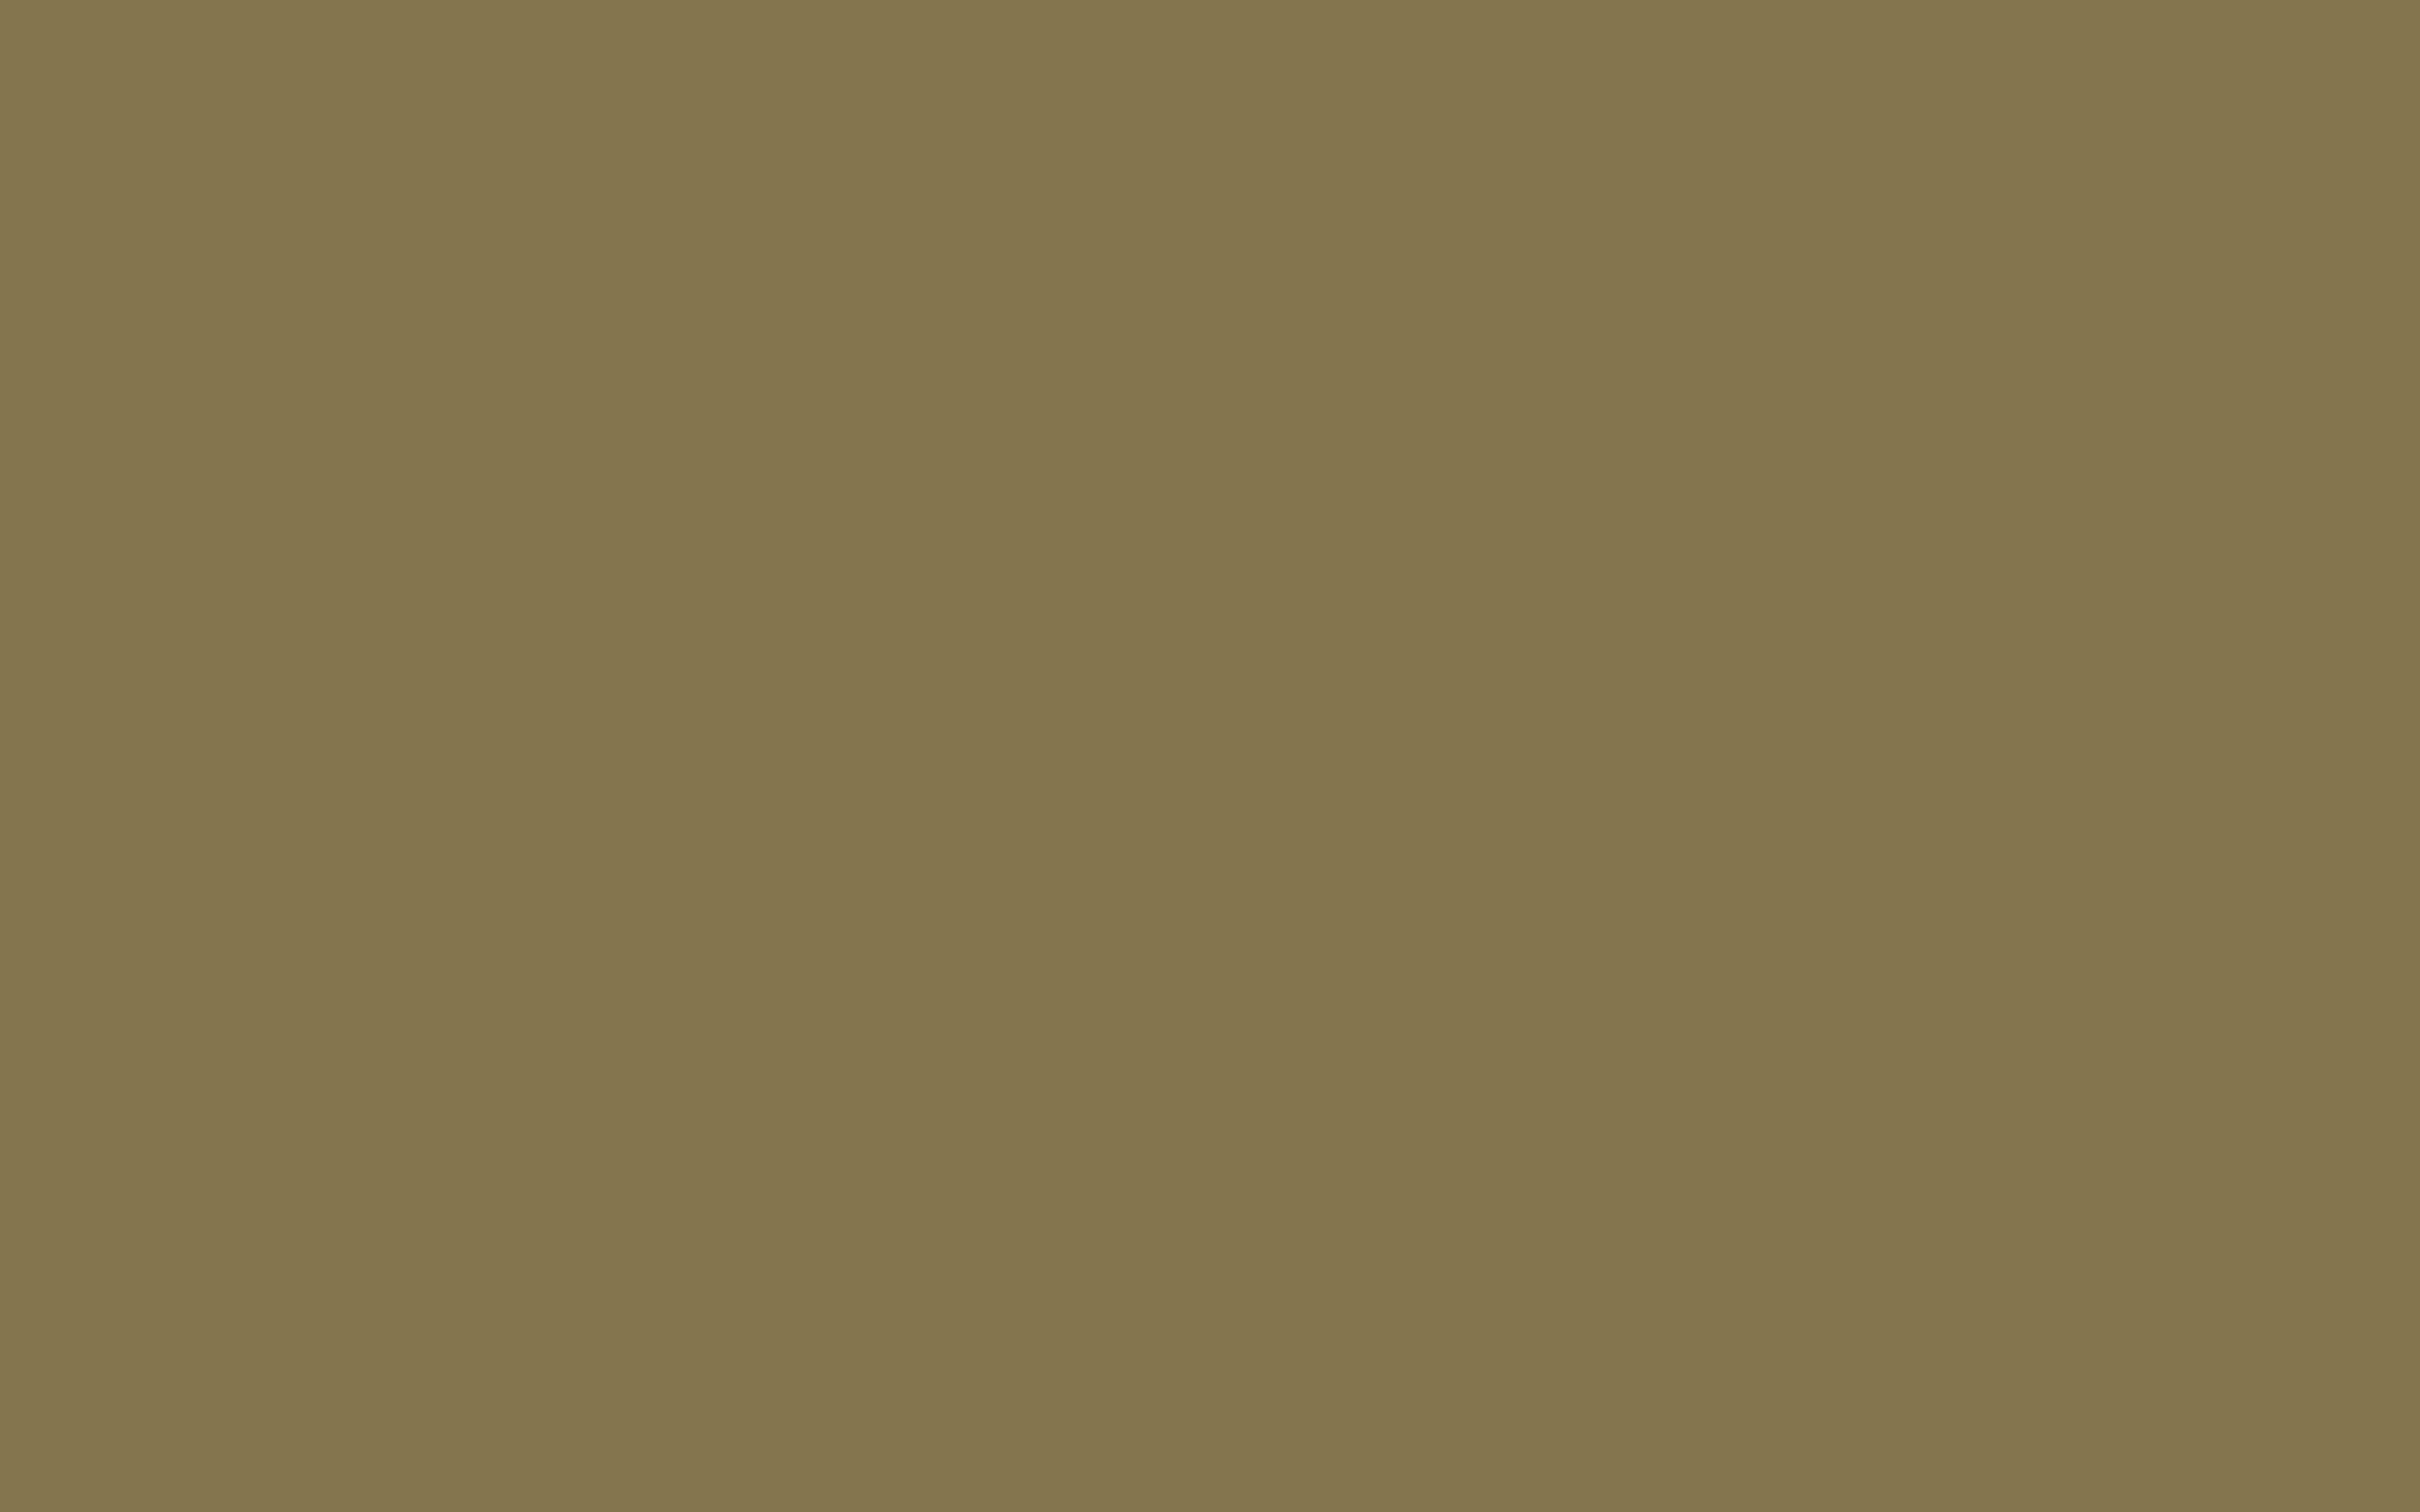 2560x1600 Gold Fusion Solid Color Background